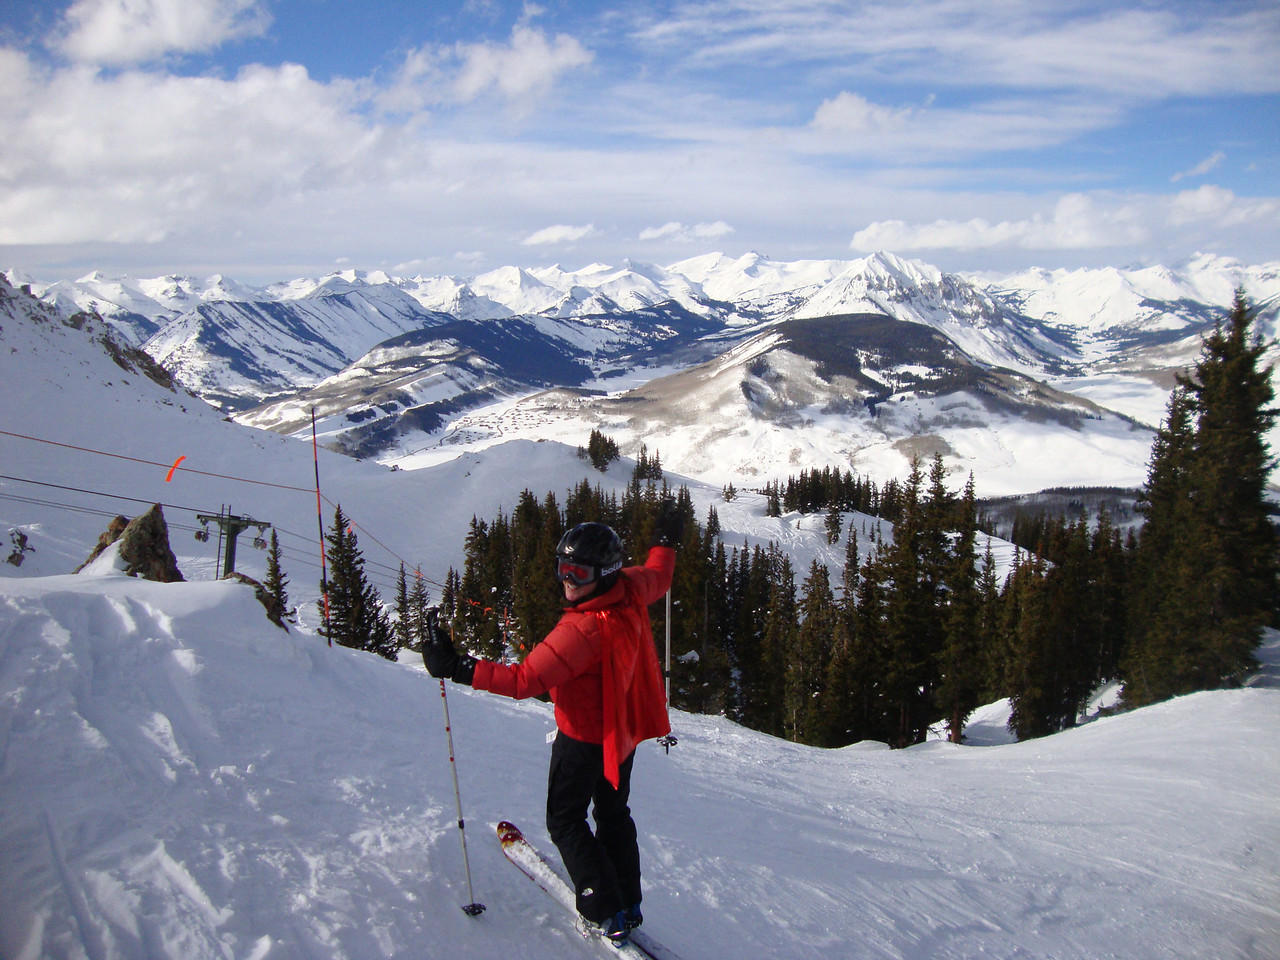 We love Crested Butte!